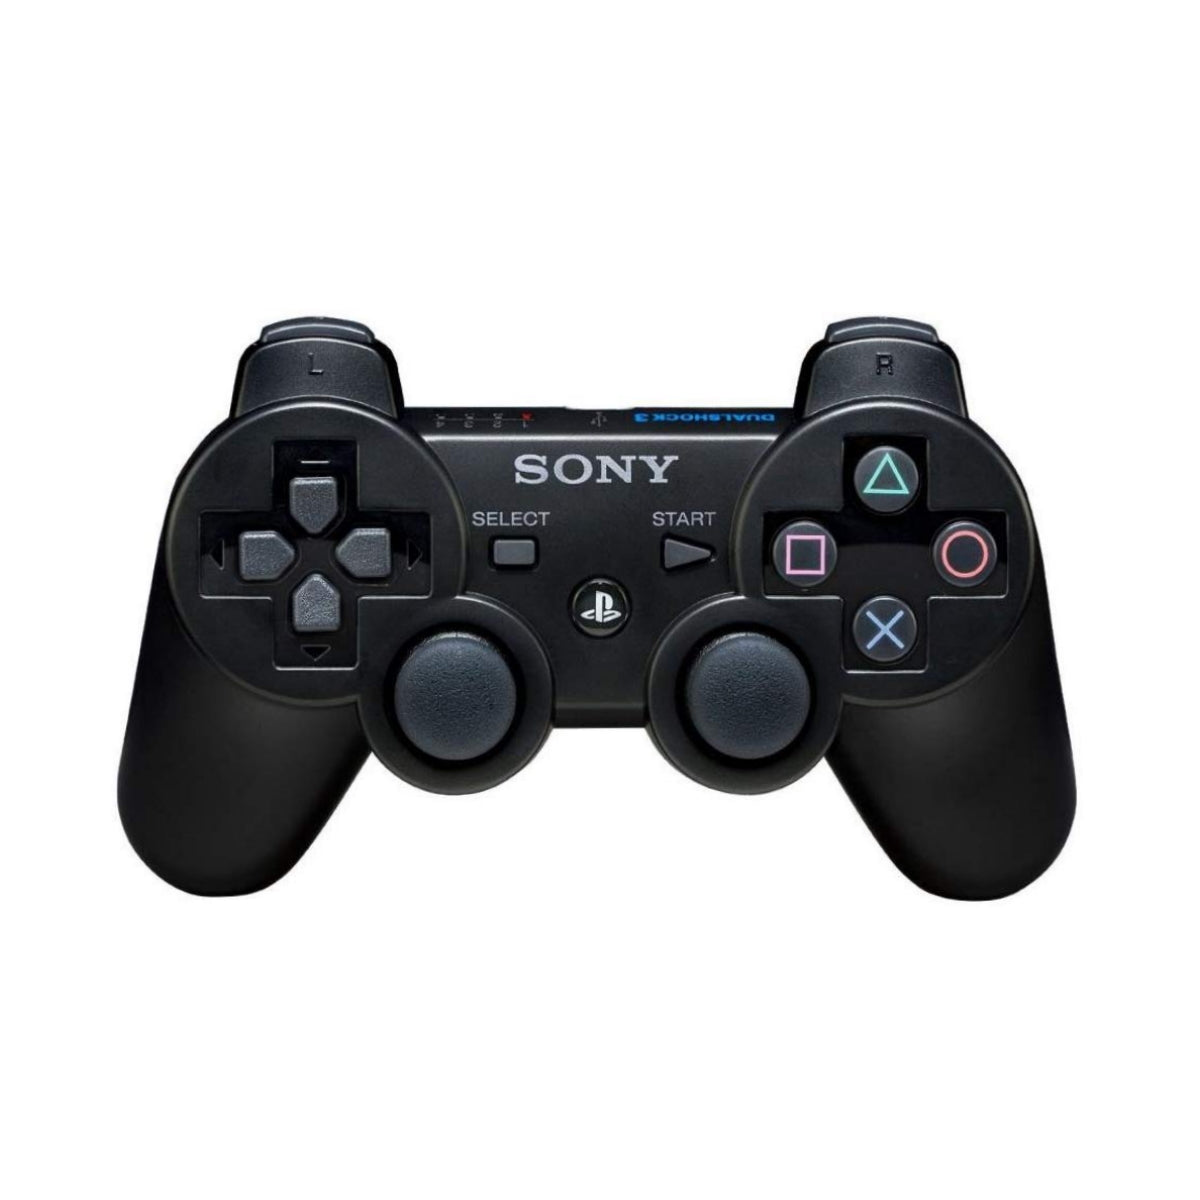 Sony PlayStation 3 (PS3) DualShock 3 Analog Controller - Black